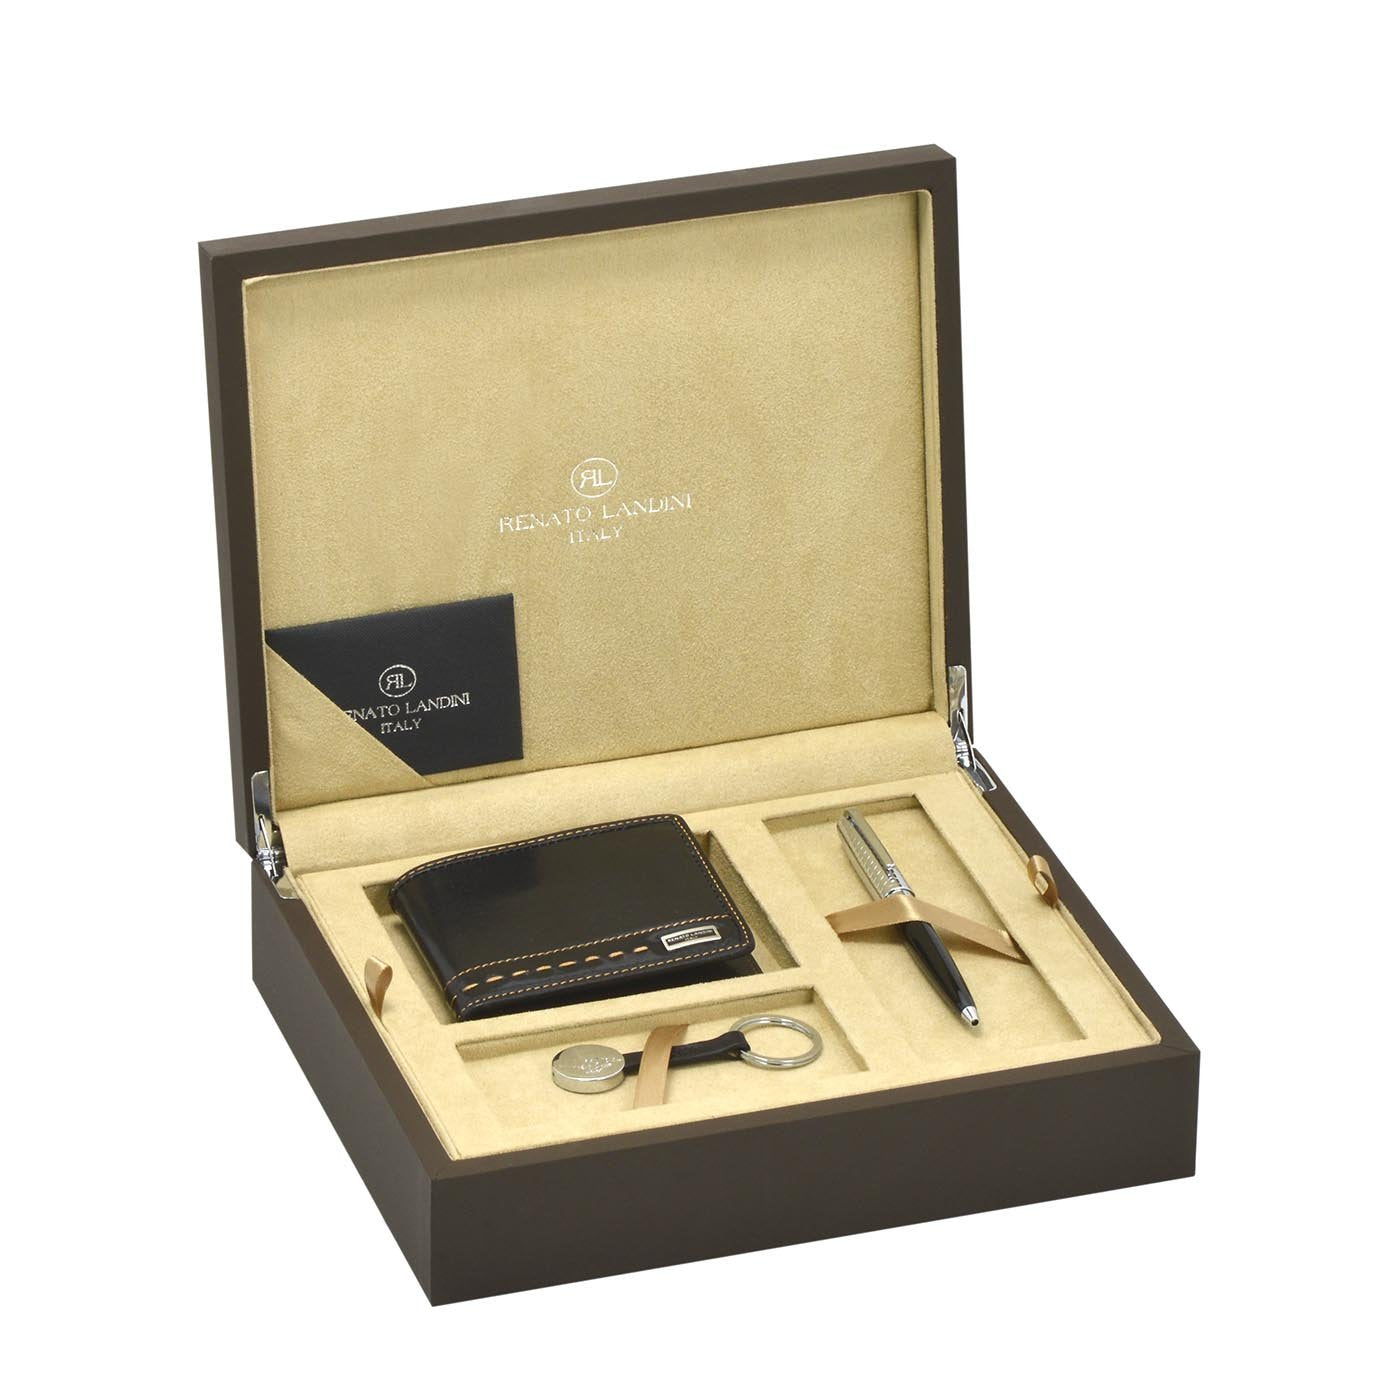 RENATO LANDINI Pen + Wallet + Key-Holder